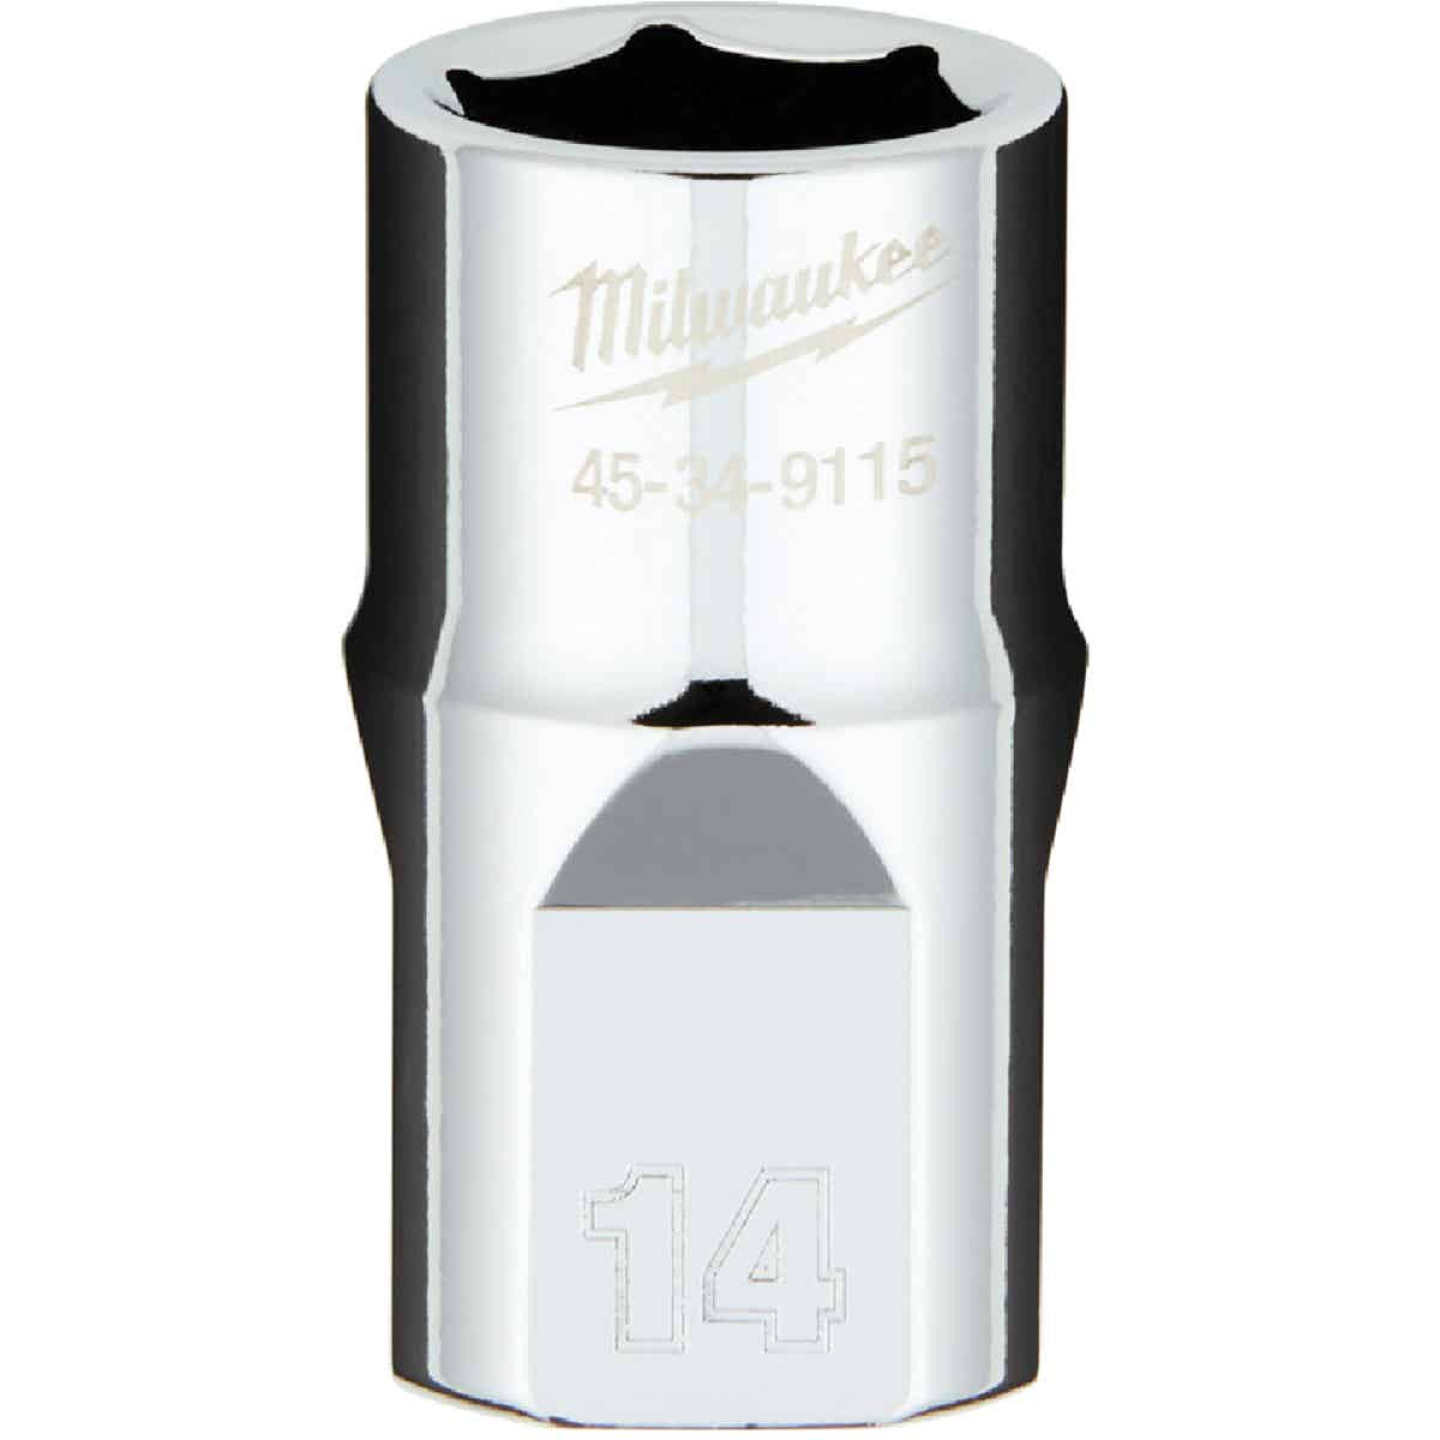 Milwaukee 1/2 In. Drive 14 mm 6-Point Shallow Metric Socket with FOUR FLAT Sides Image 1